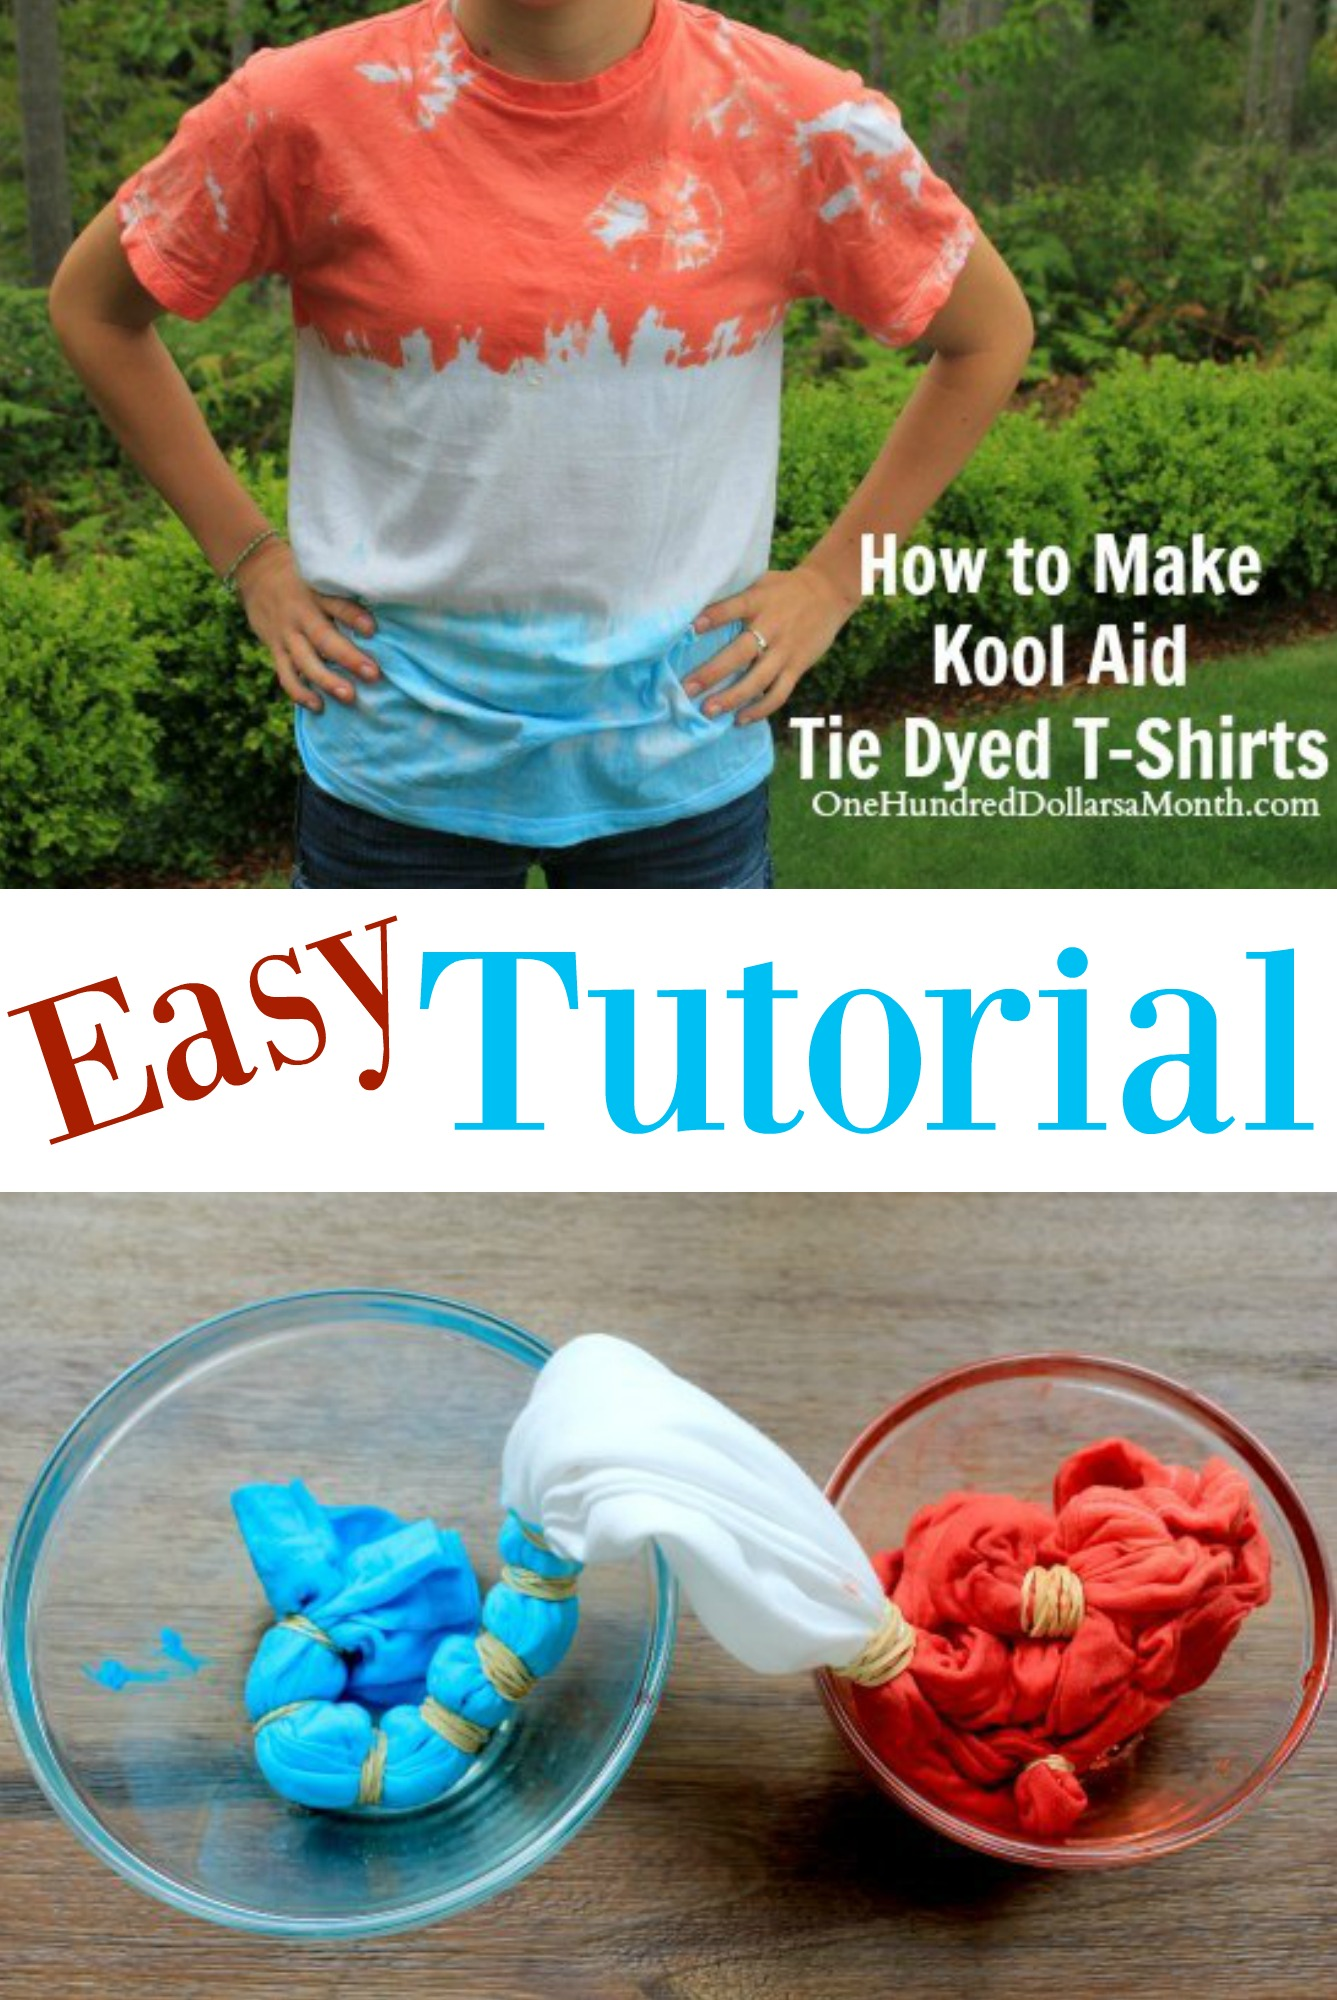 ae643463d4a4 How to Make Kool Aid Tie Dyed T-Shirts. I have a ton of Kool Aid packets  left over from my extreme couponing days